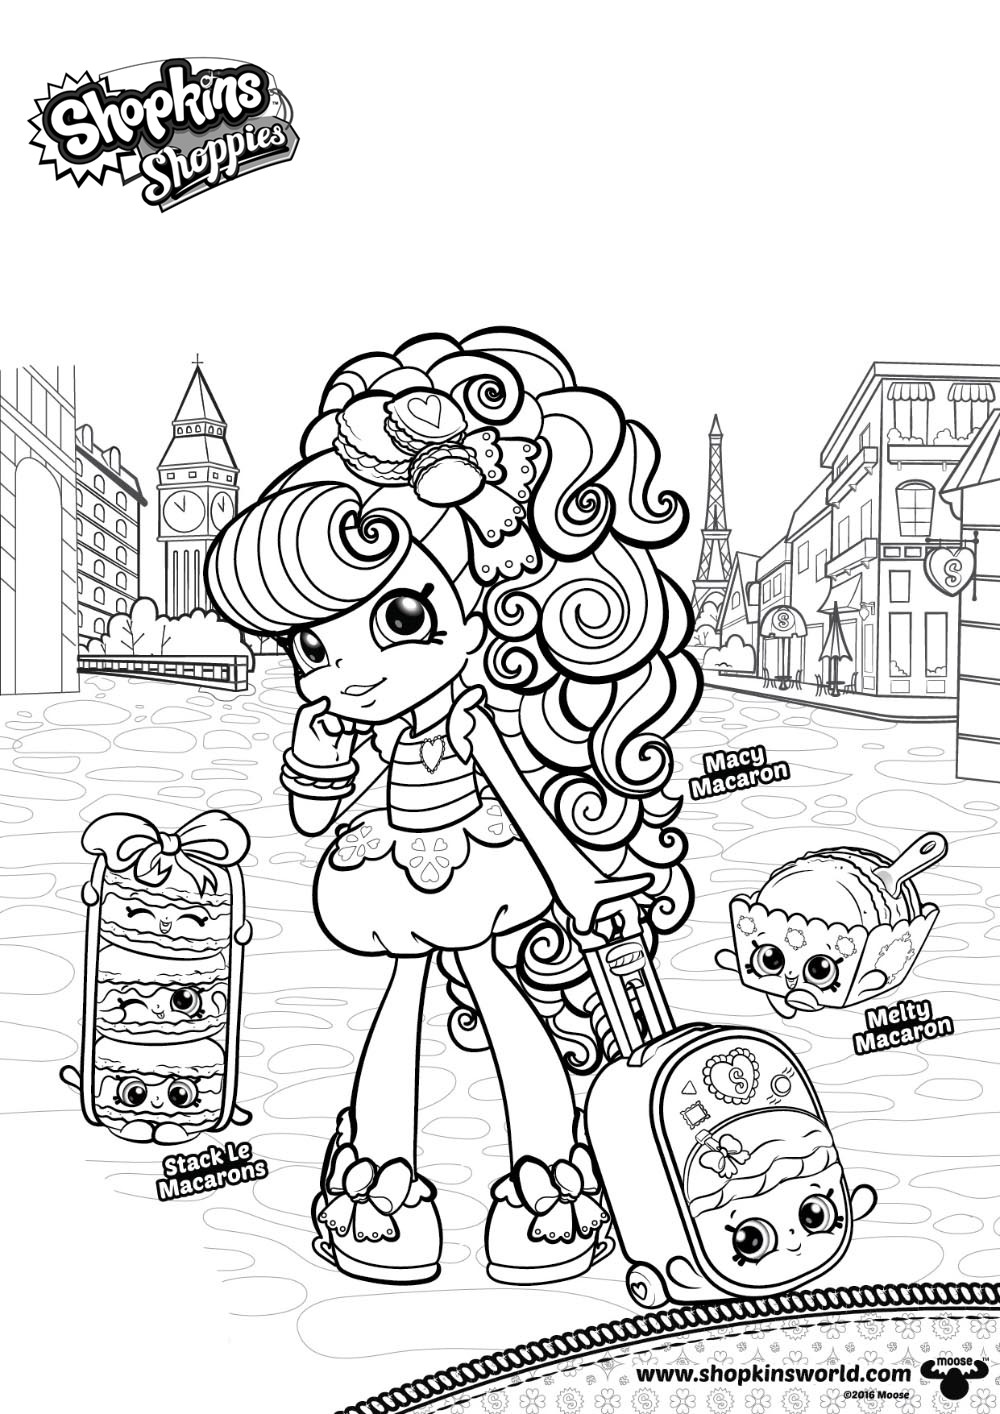 free shoppies coloring pages shopkins macy macaron printable for kids and adults